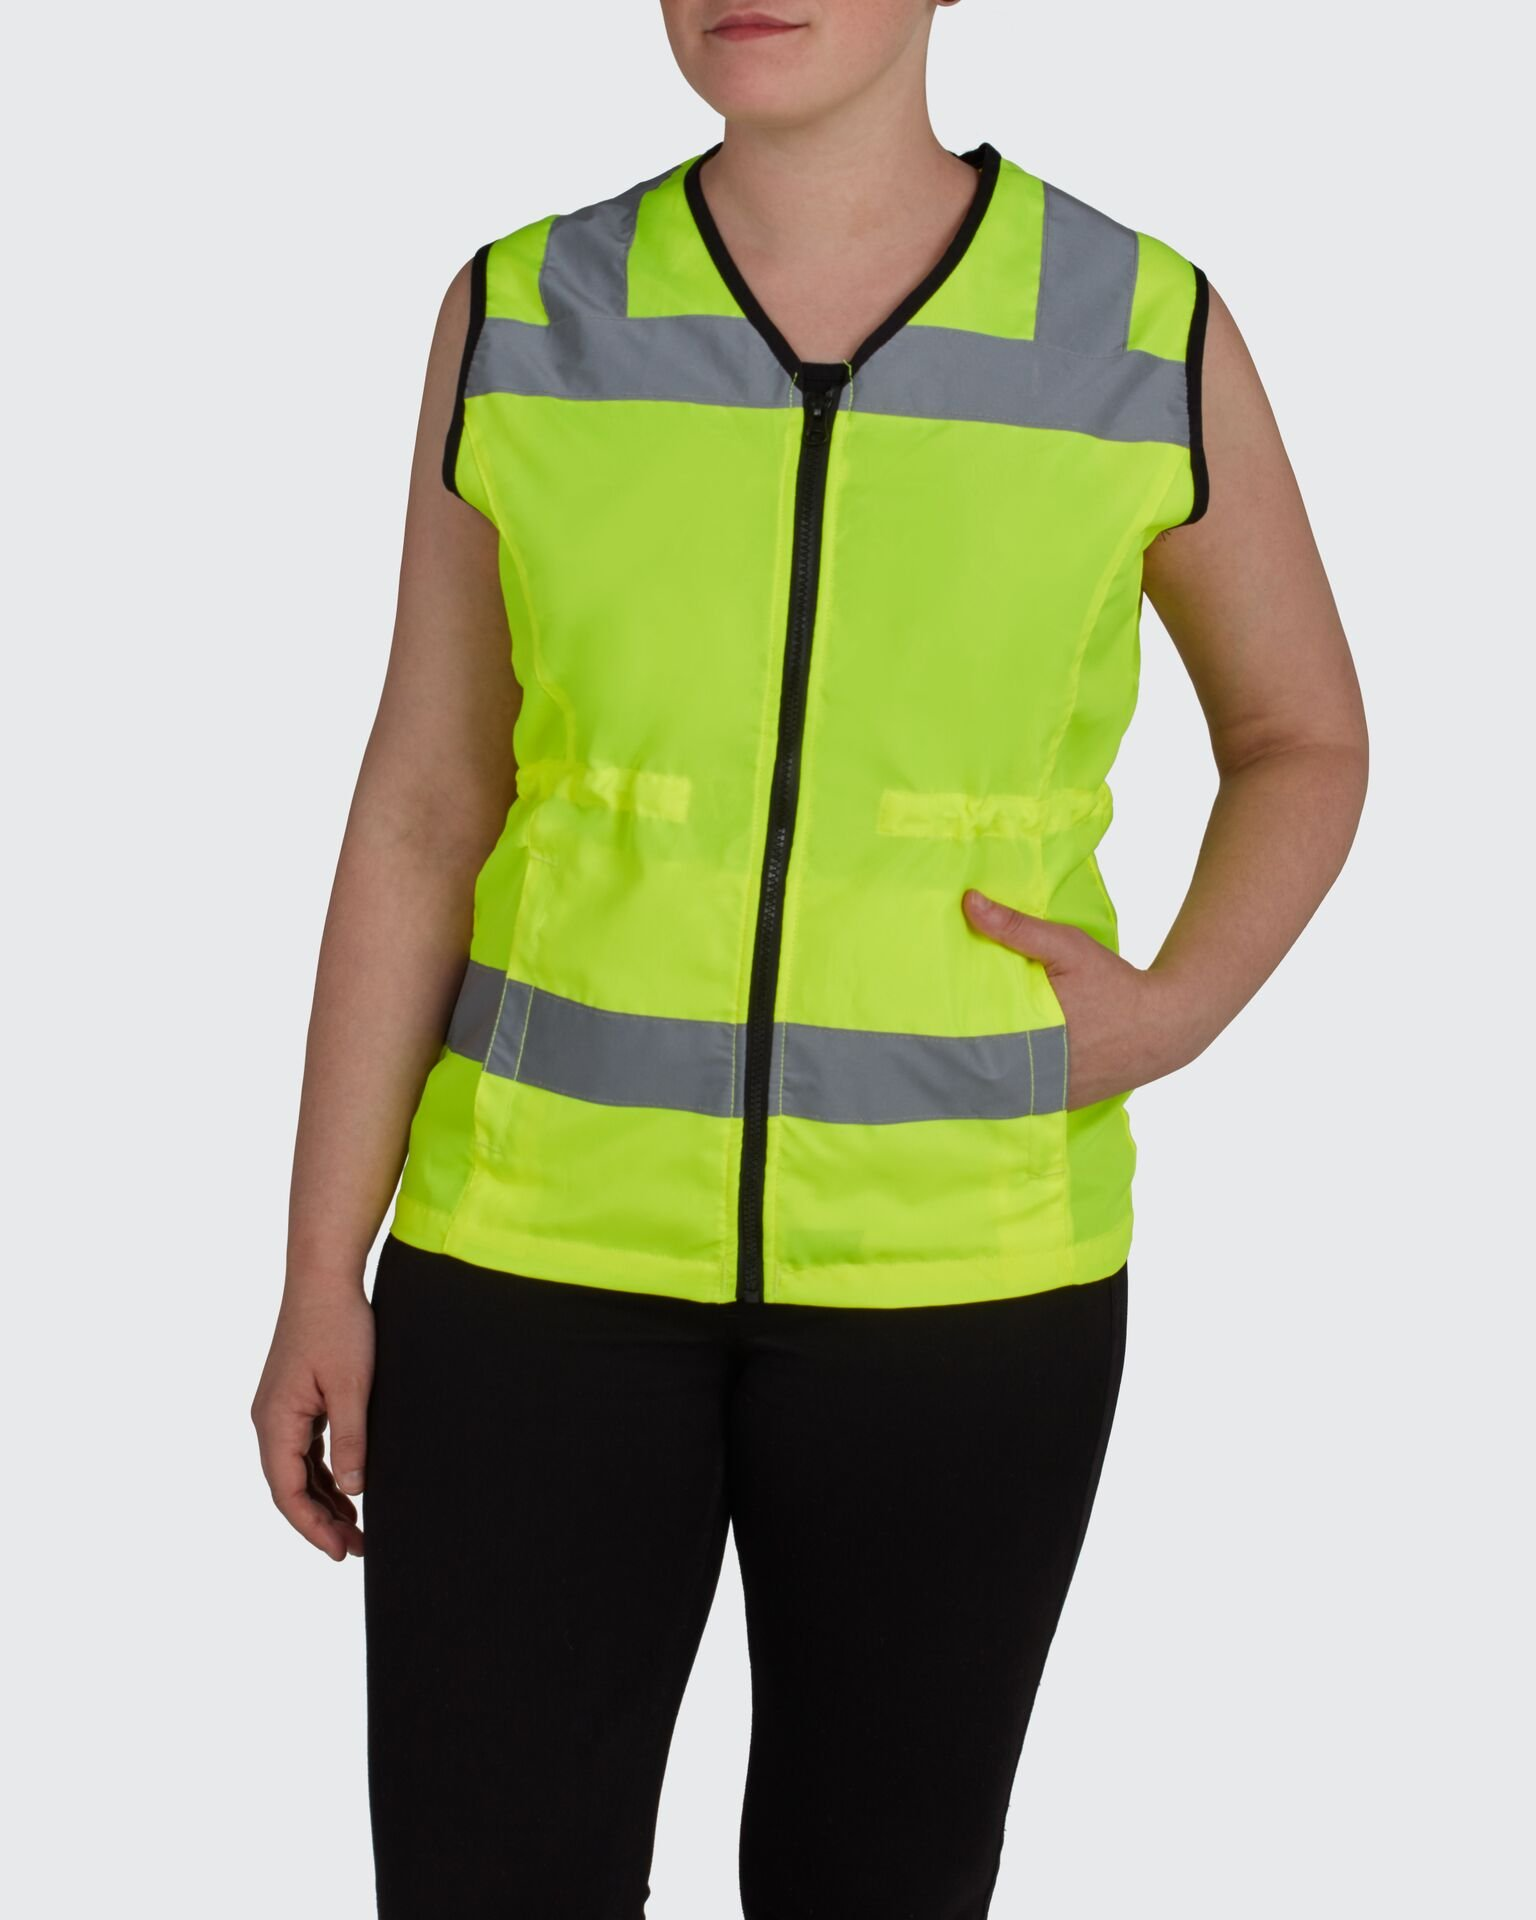 Womens High Visibility Safety Vest: Bright Nylon Surveyor Vests with Reflective Lines Zipper Closure and Teflon Coating - Lime Medium